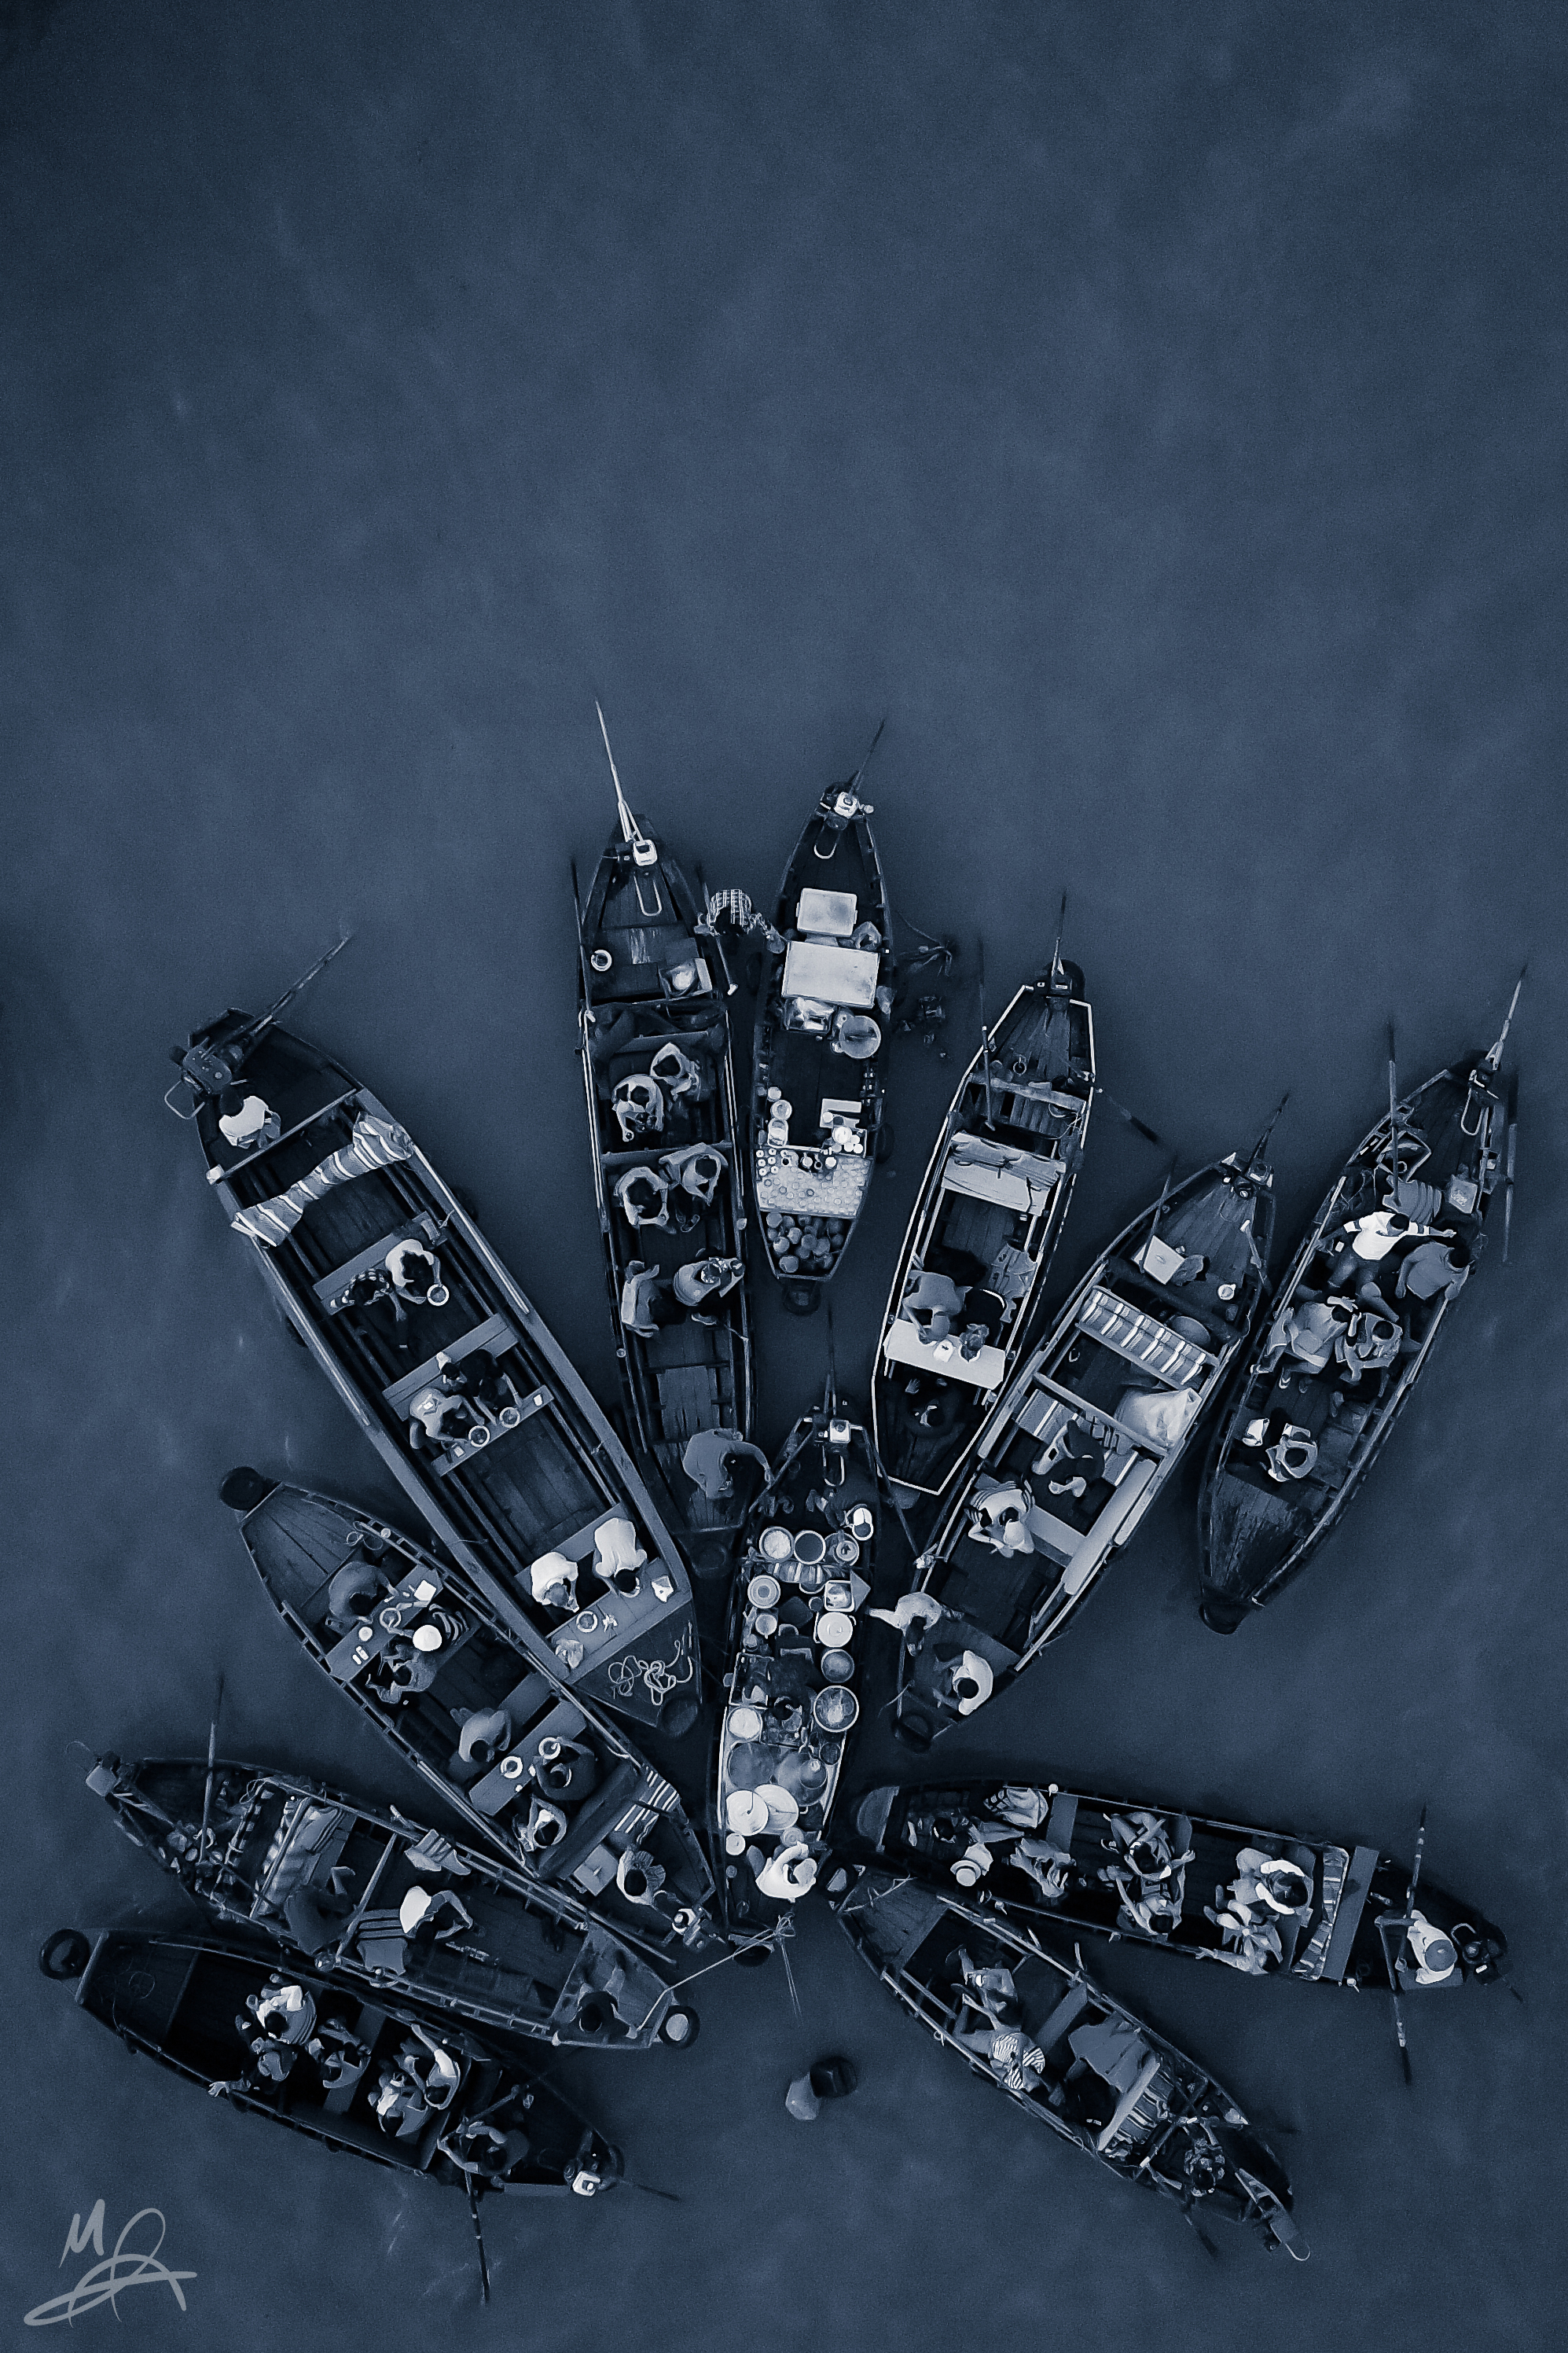 A Flower of Boats